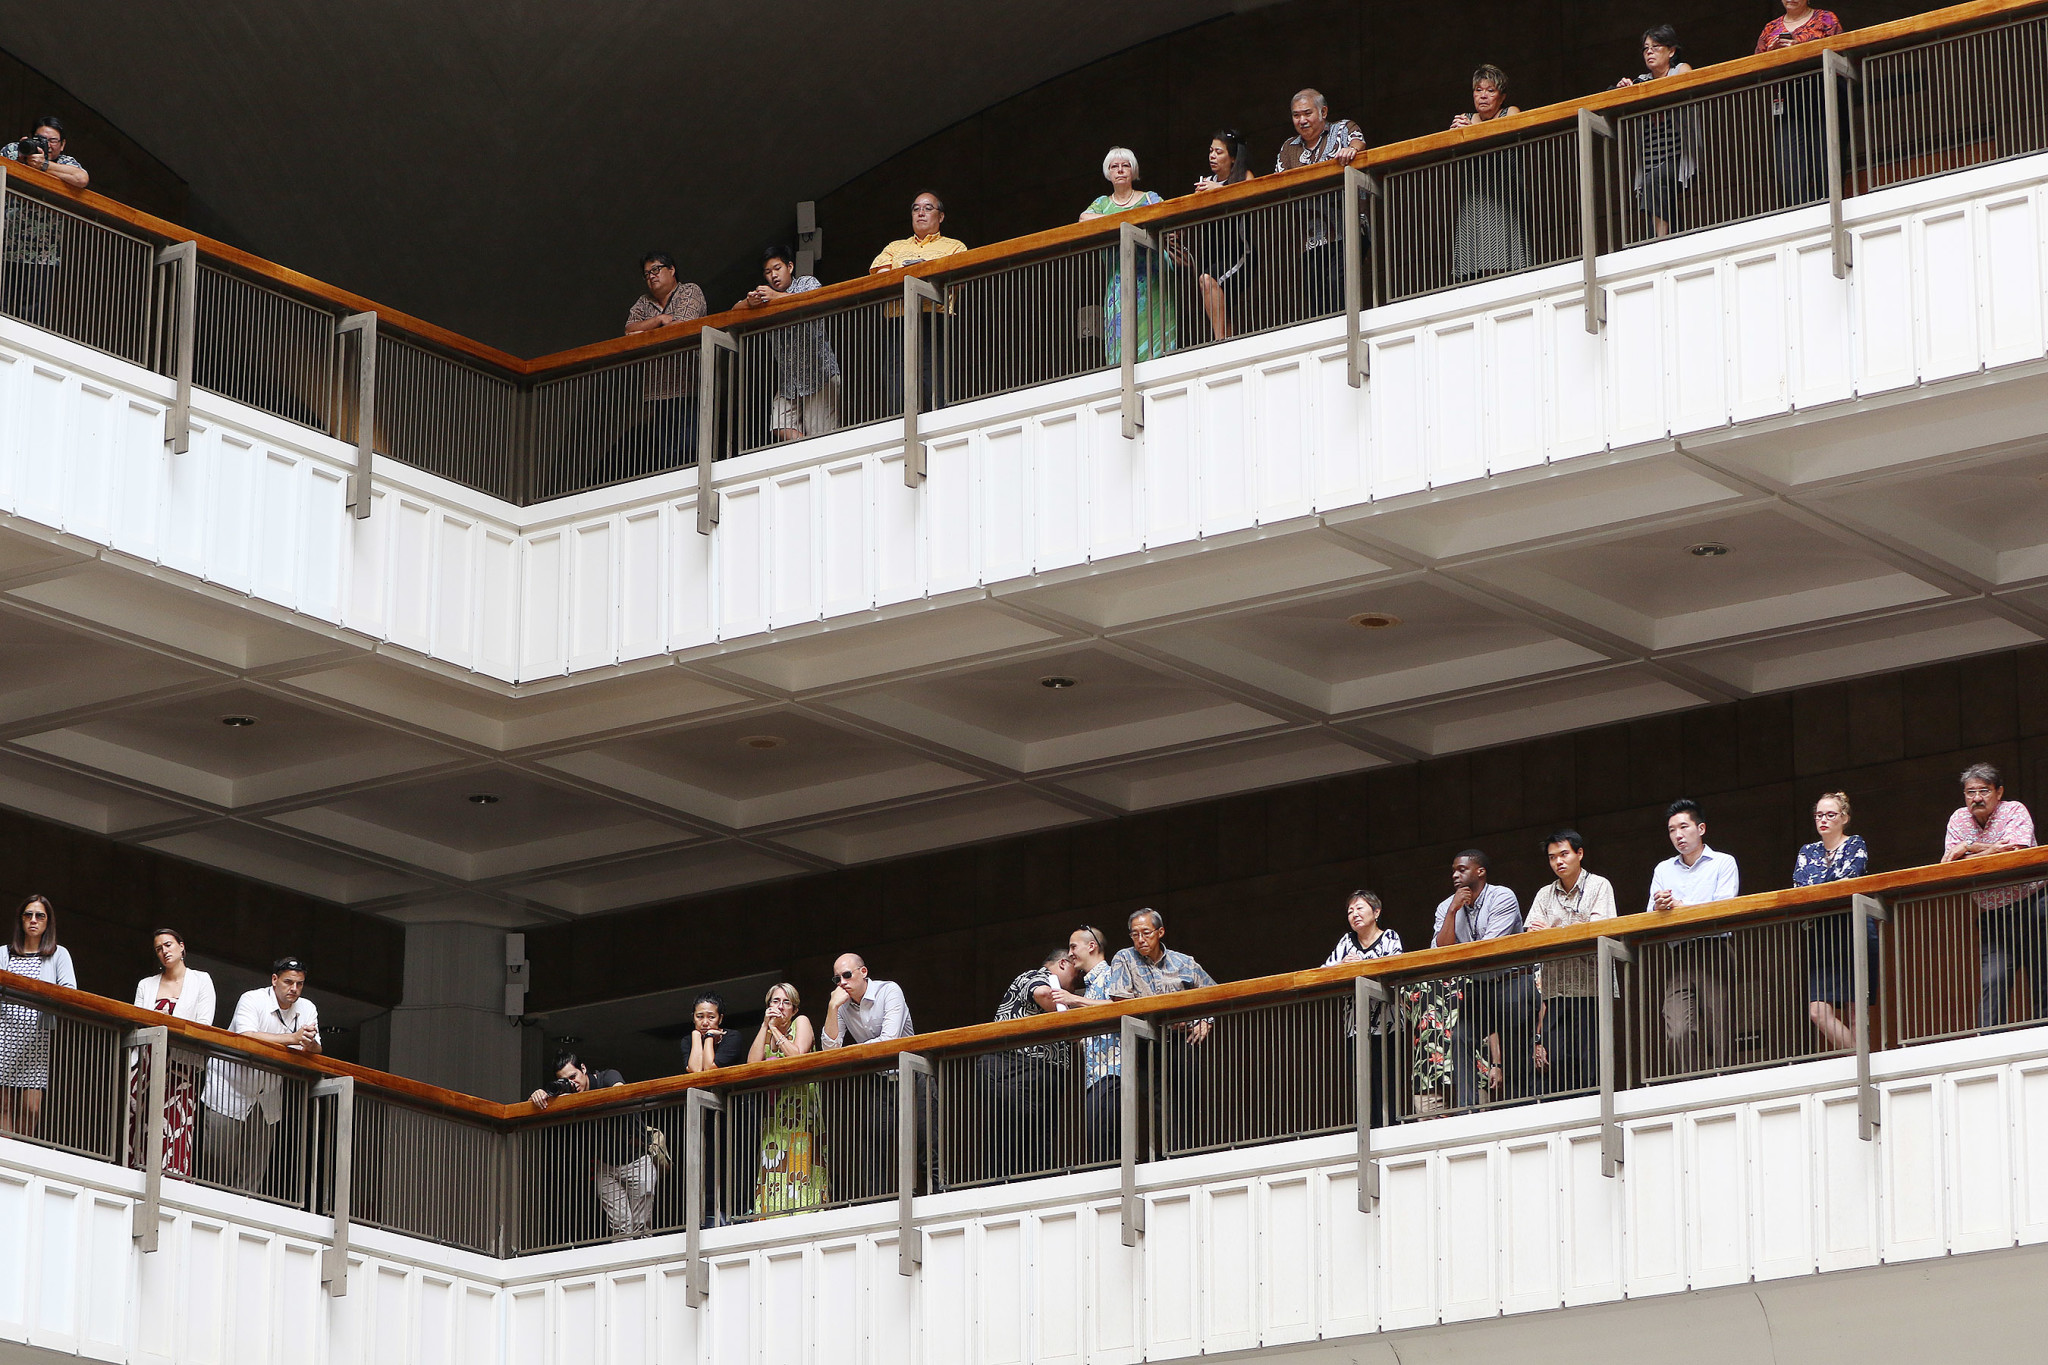 <p>Mourners watch the service from the Capitol's upper floors. Hundreds filled the seats and standing room on the Rotunda floor below.</p>